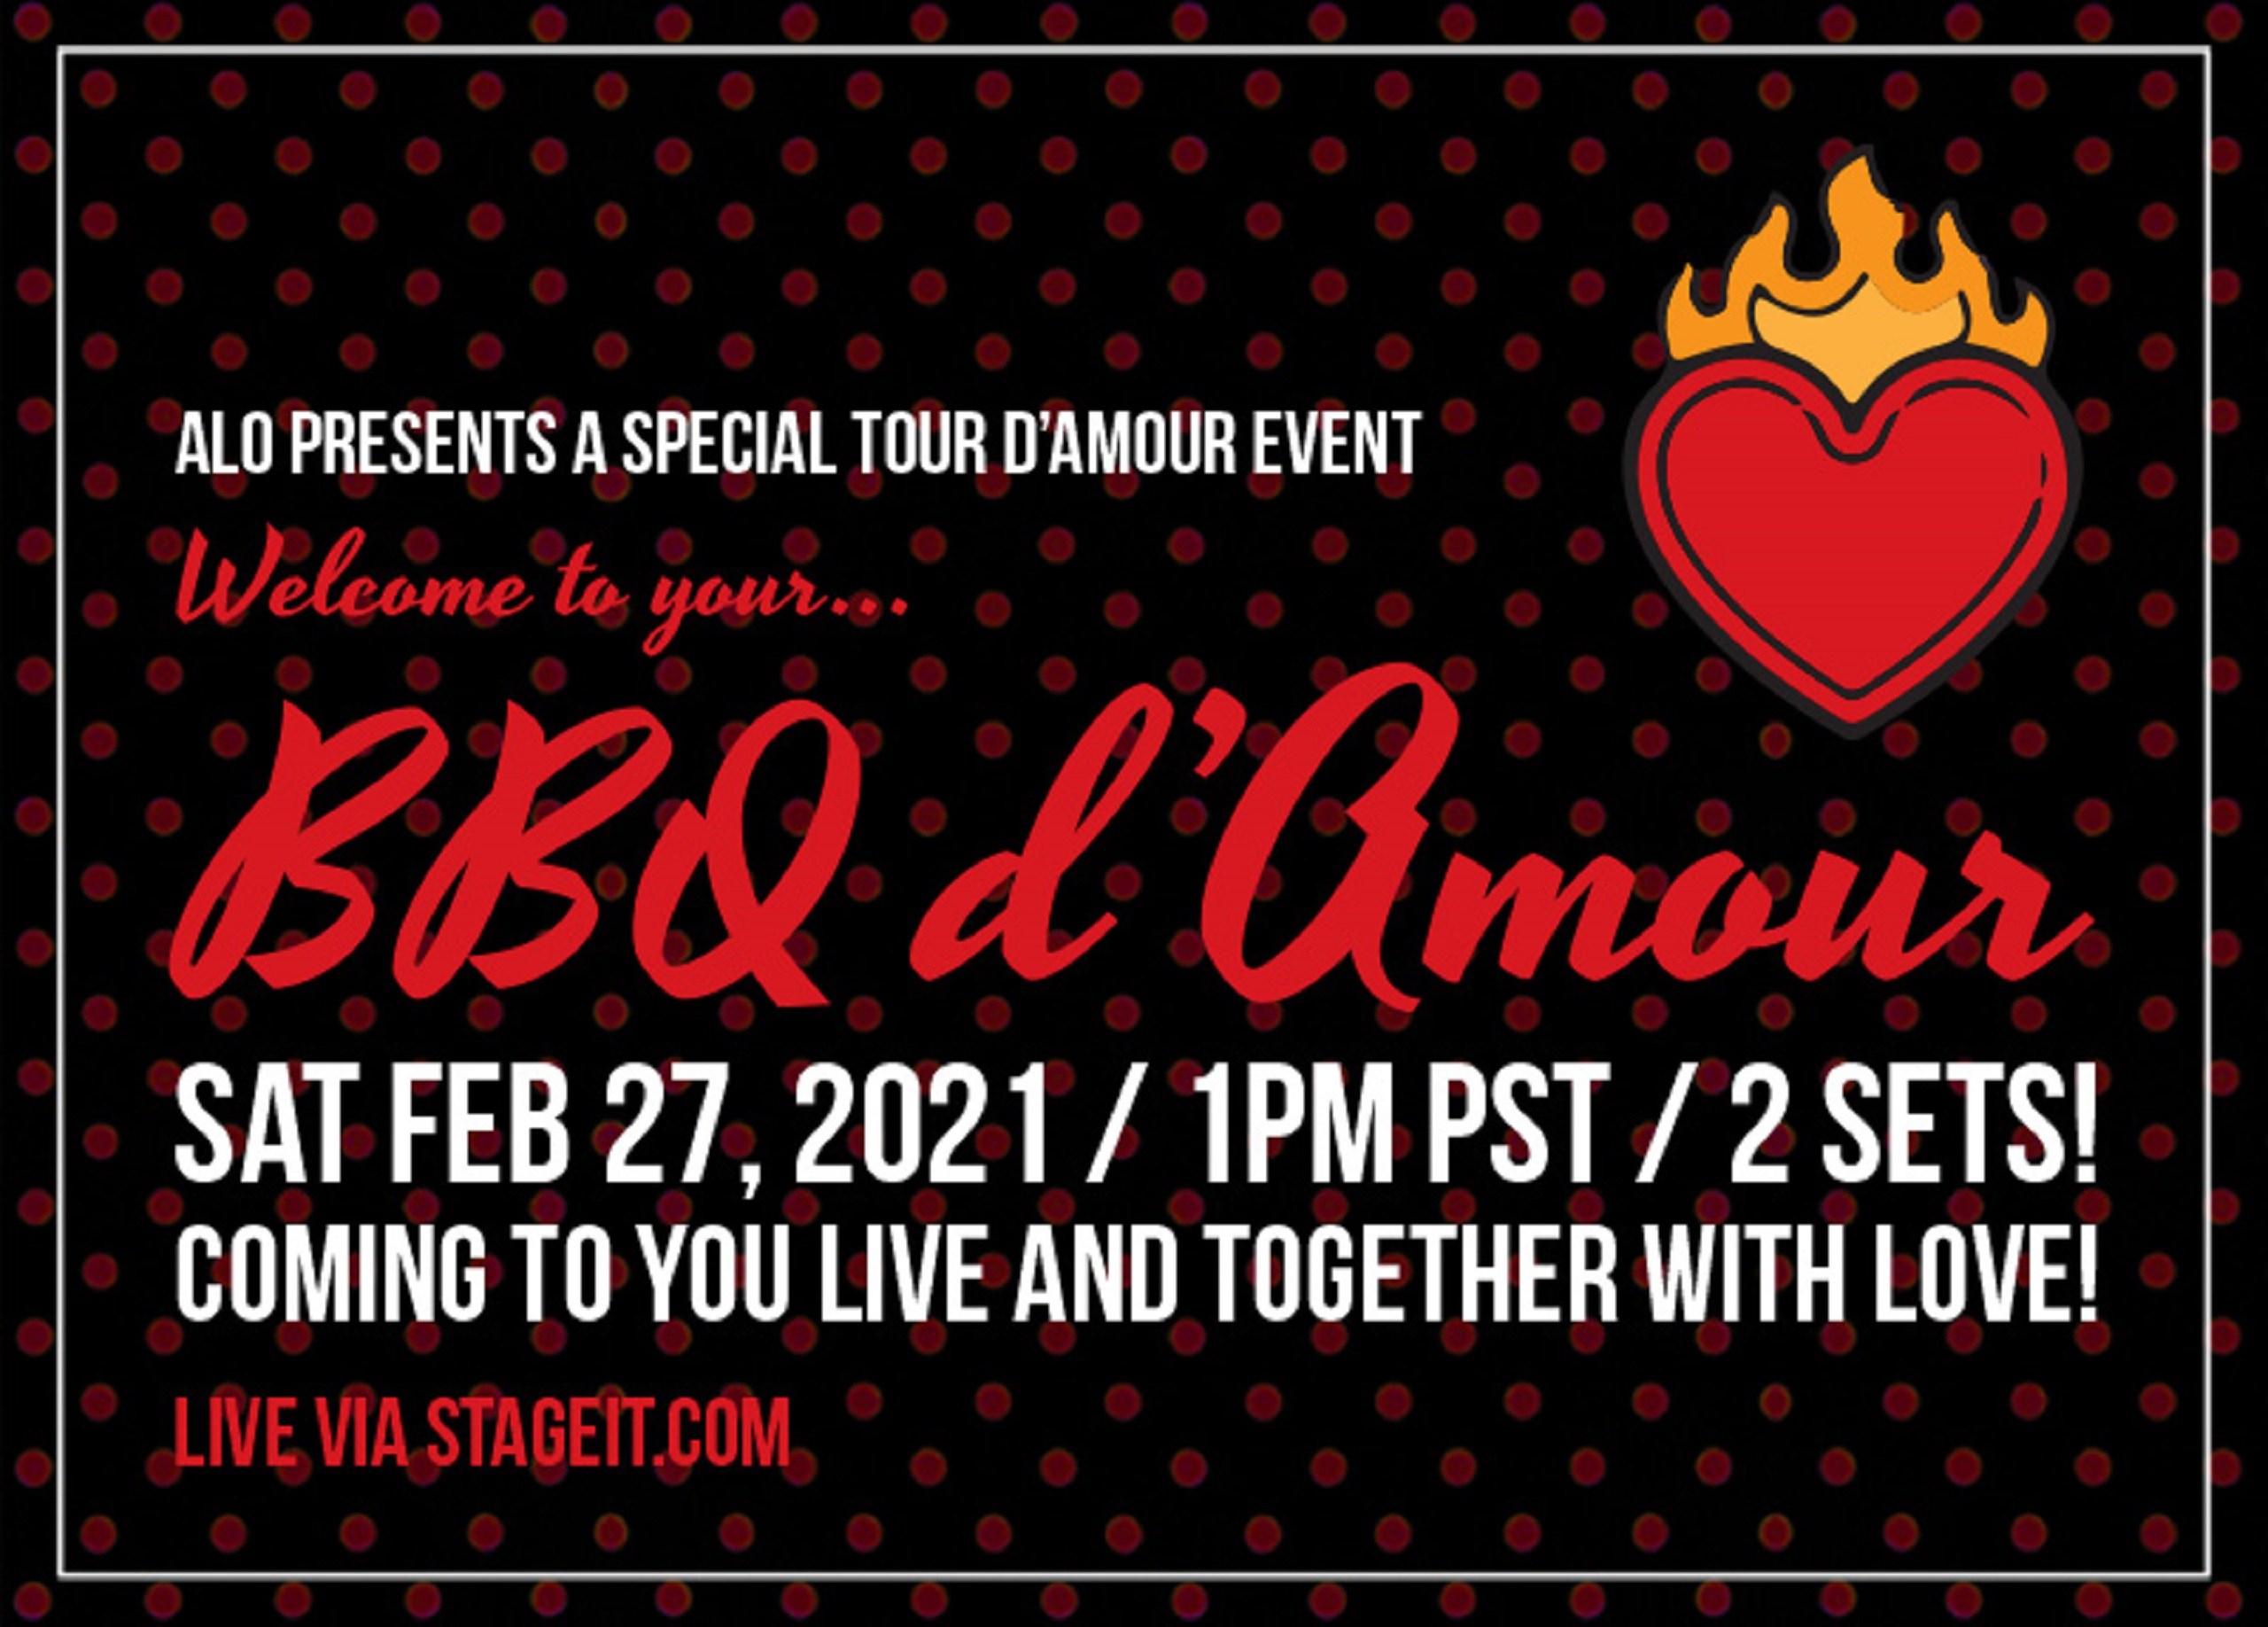 ALO announces: A Tour d'Amour Digital Event